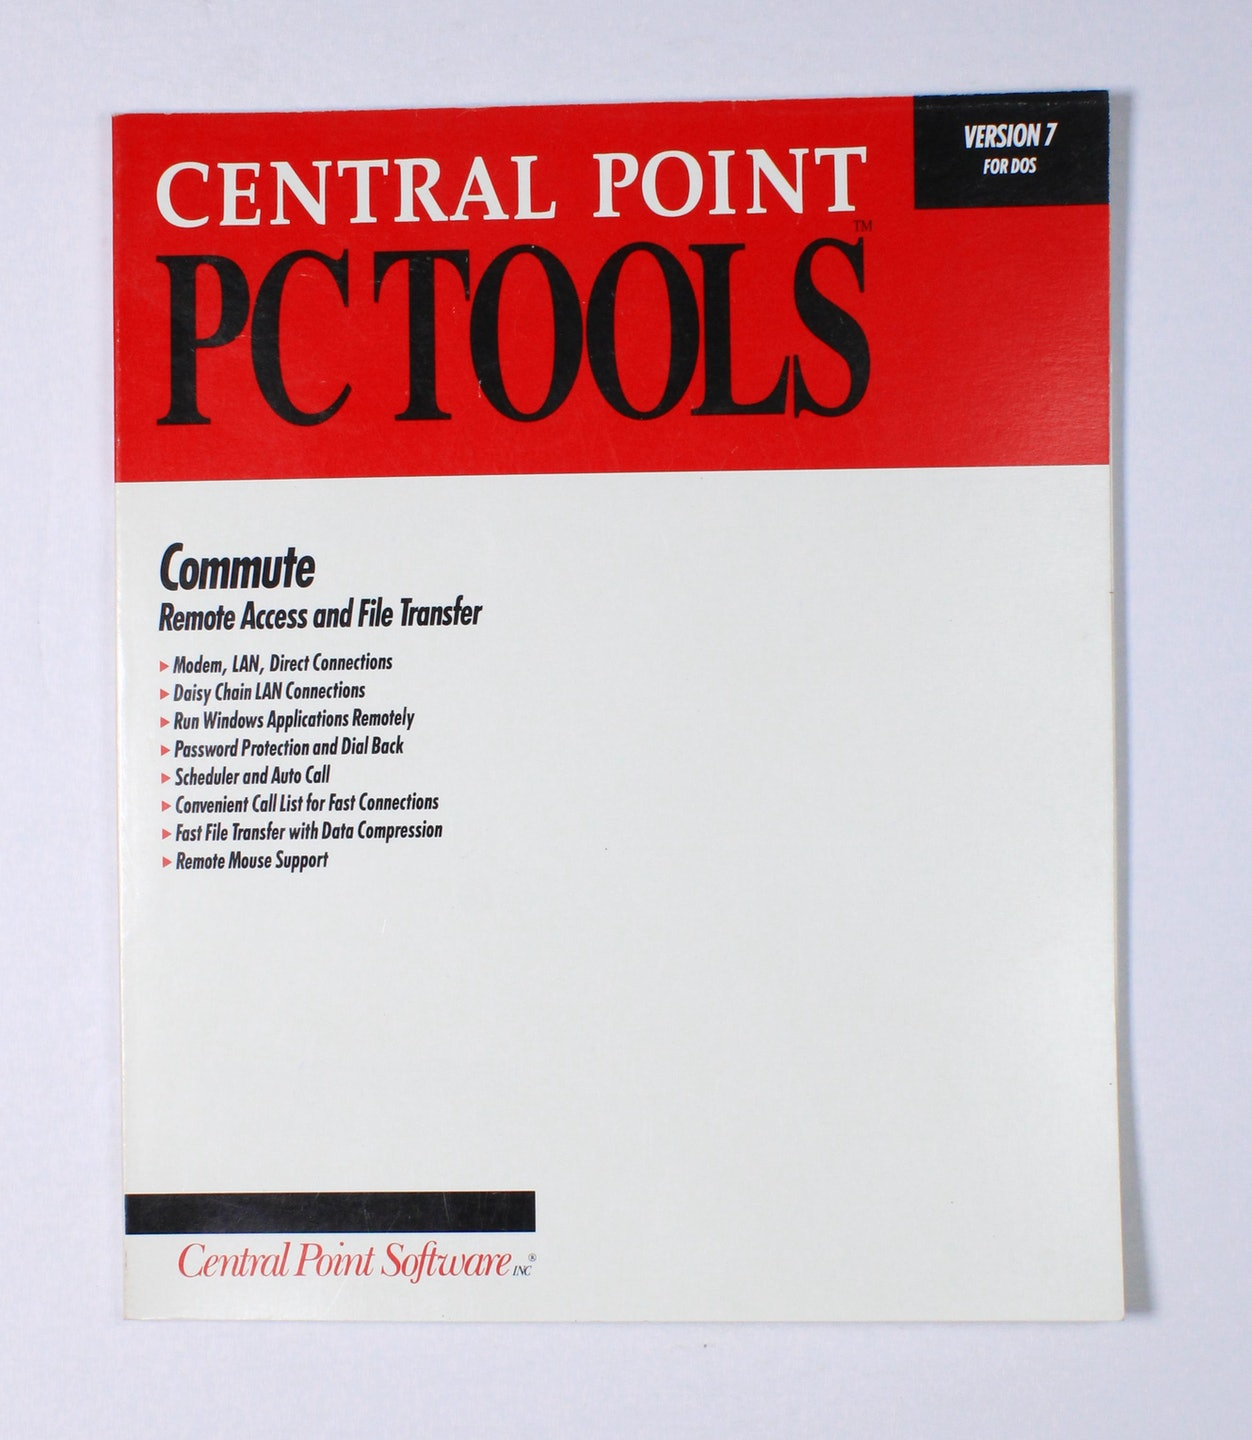 Central Point PC Tools: Commute (Remote Access and File Transfer)